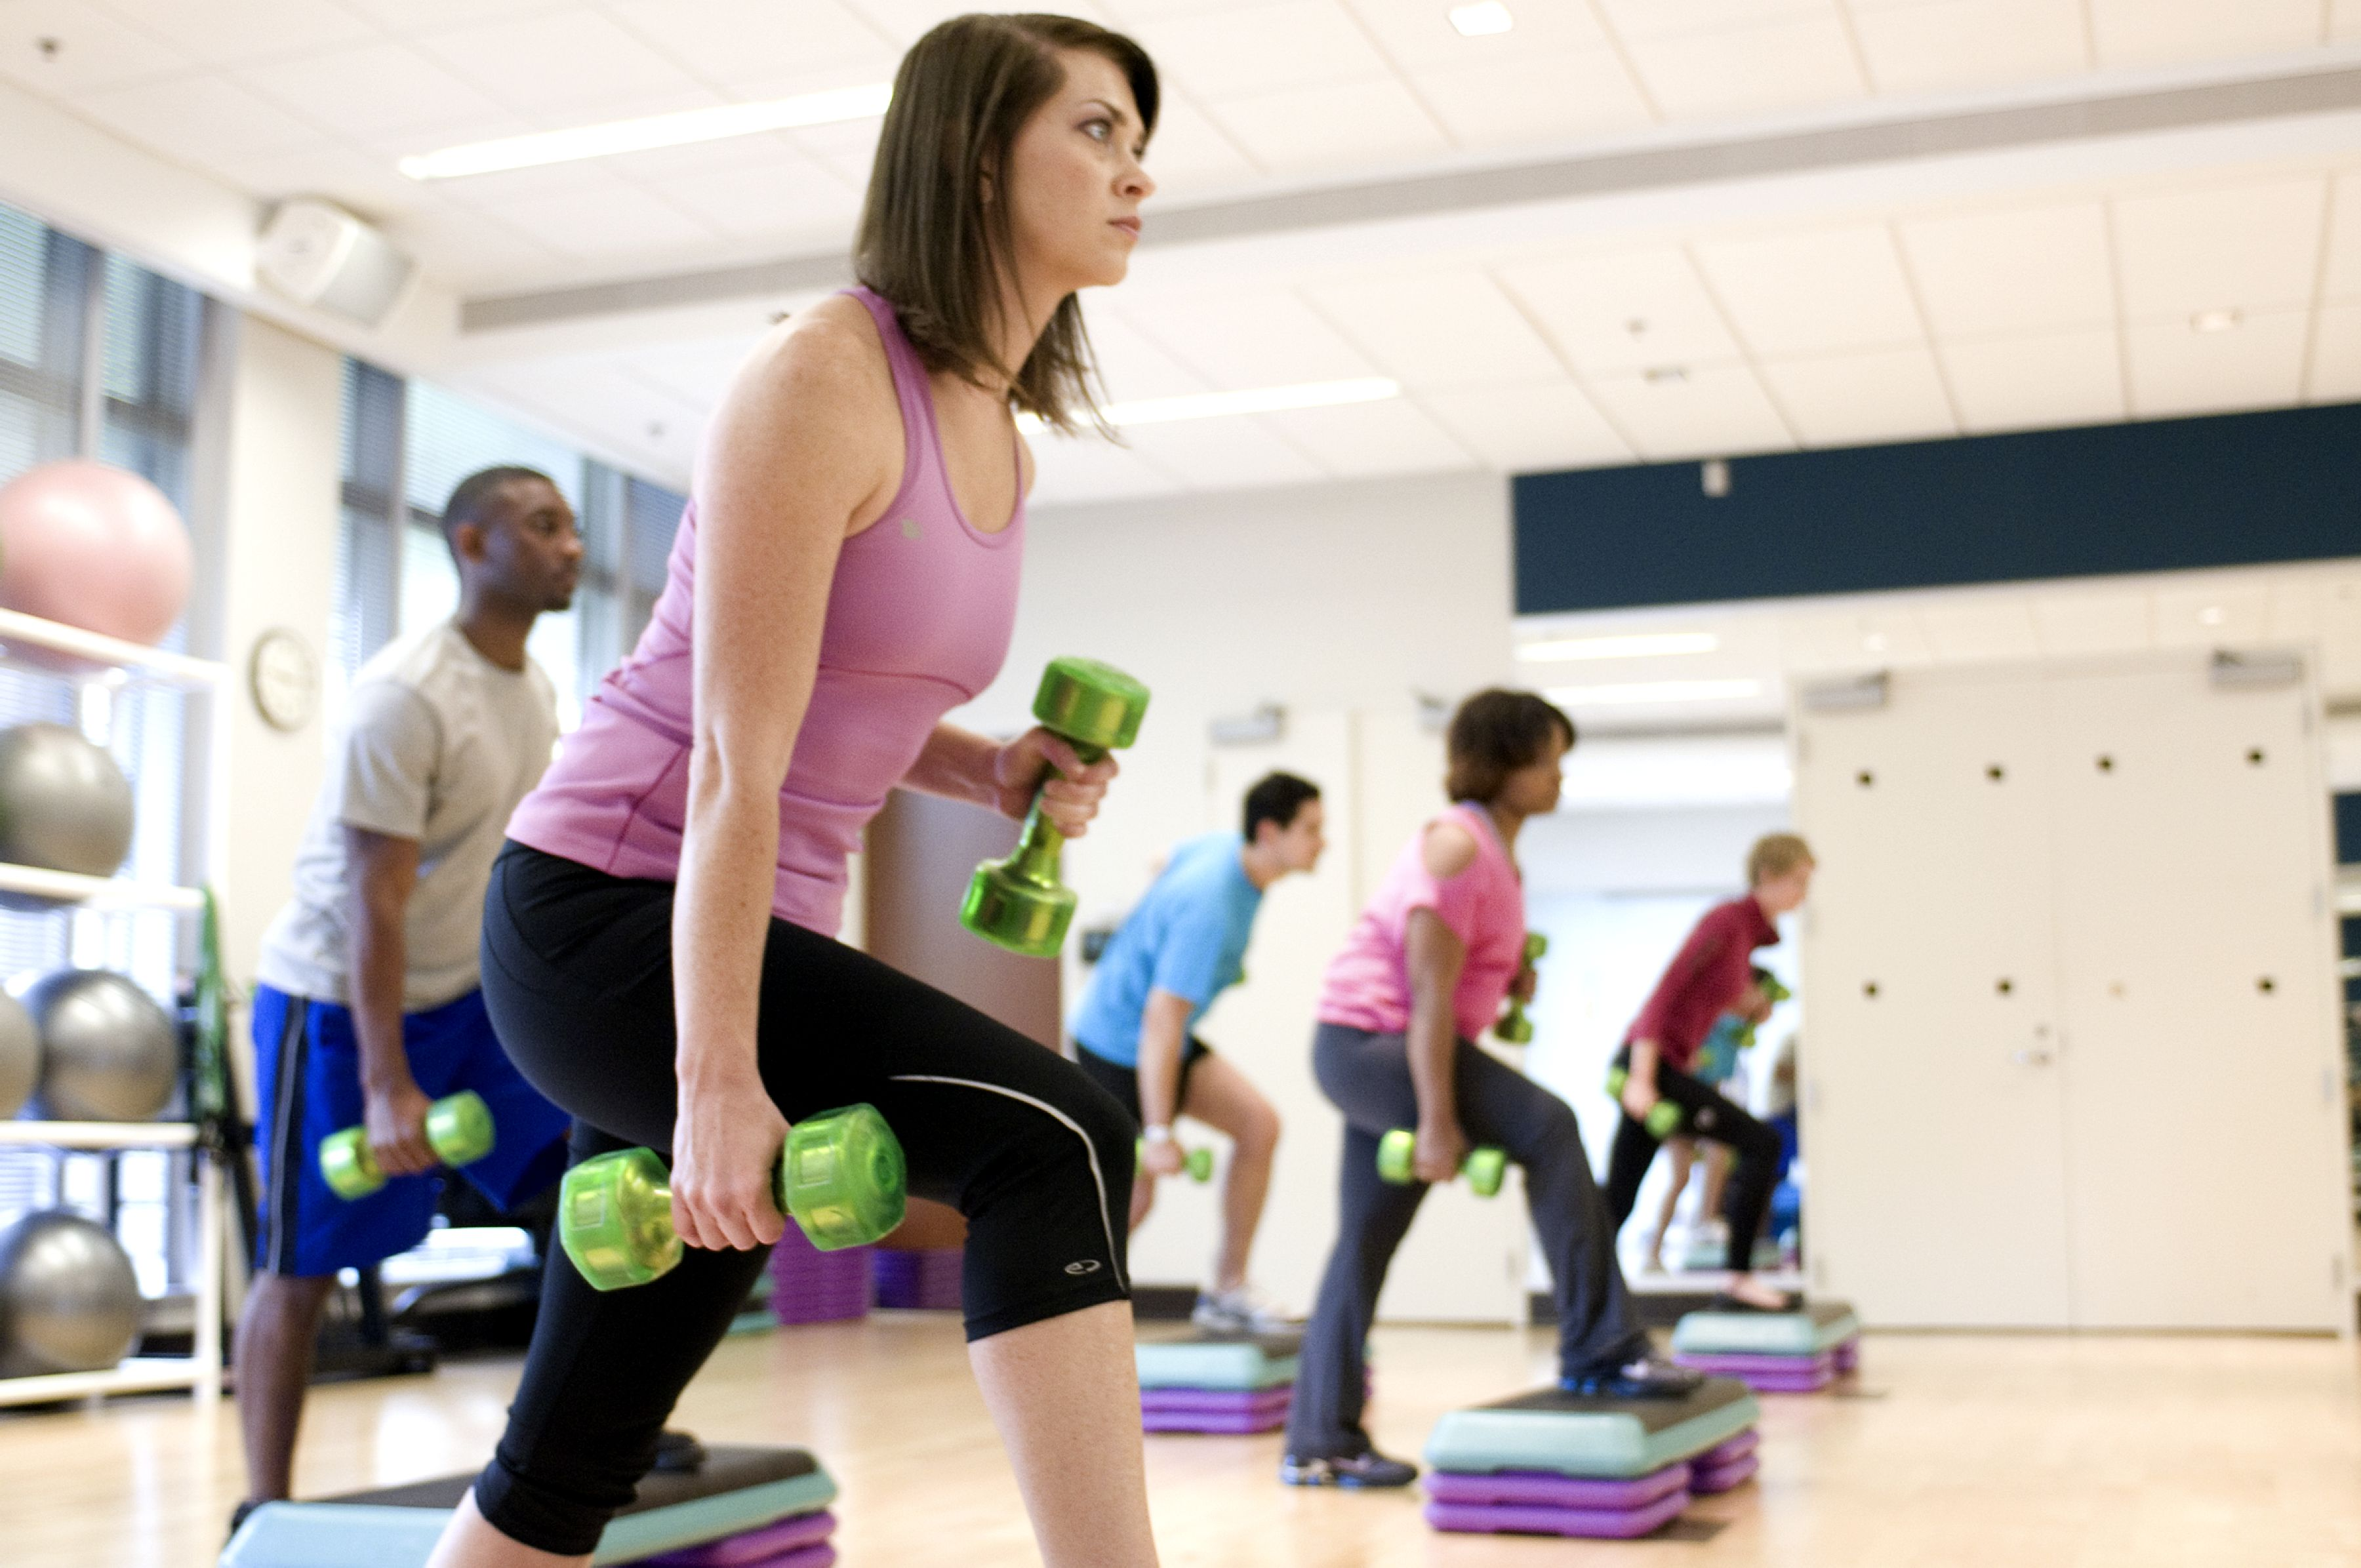 exercise and aerobic fitness The early stage of any exercise is anaerobic sprinting, weight lifting, push-ups, or jumping, in fact any short burst of exertion and high-intensity movement, is considered an anaerobic exercise.